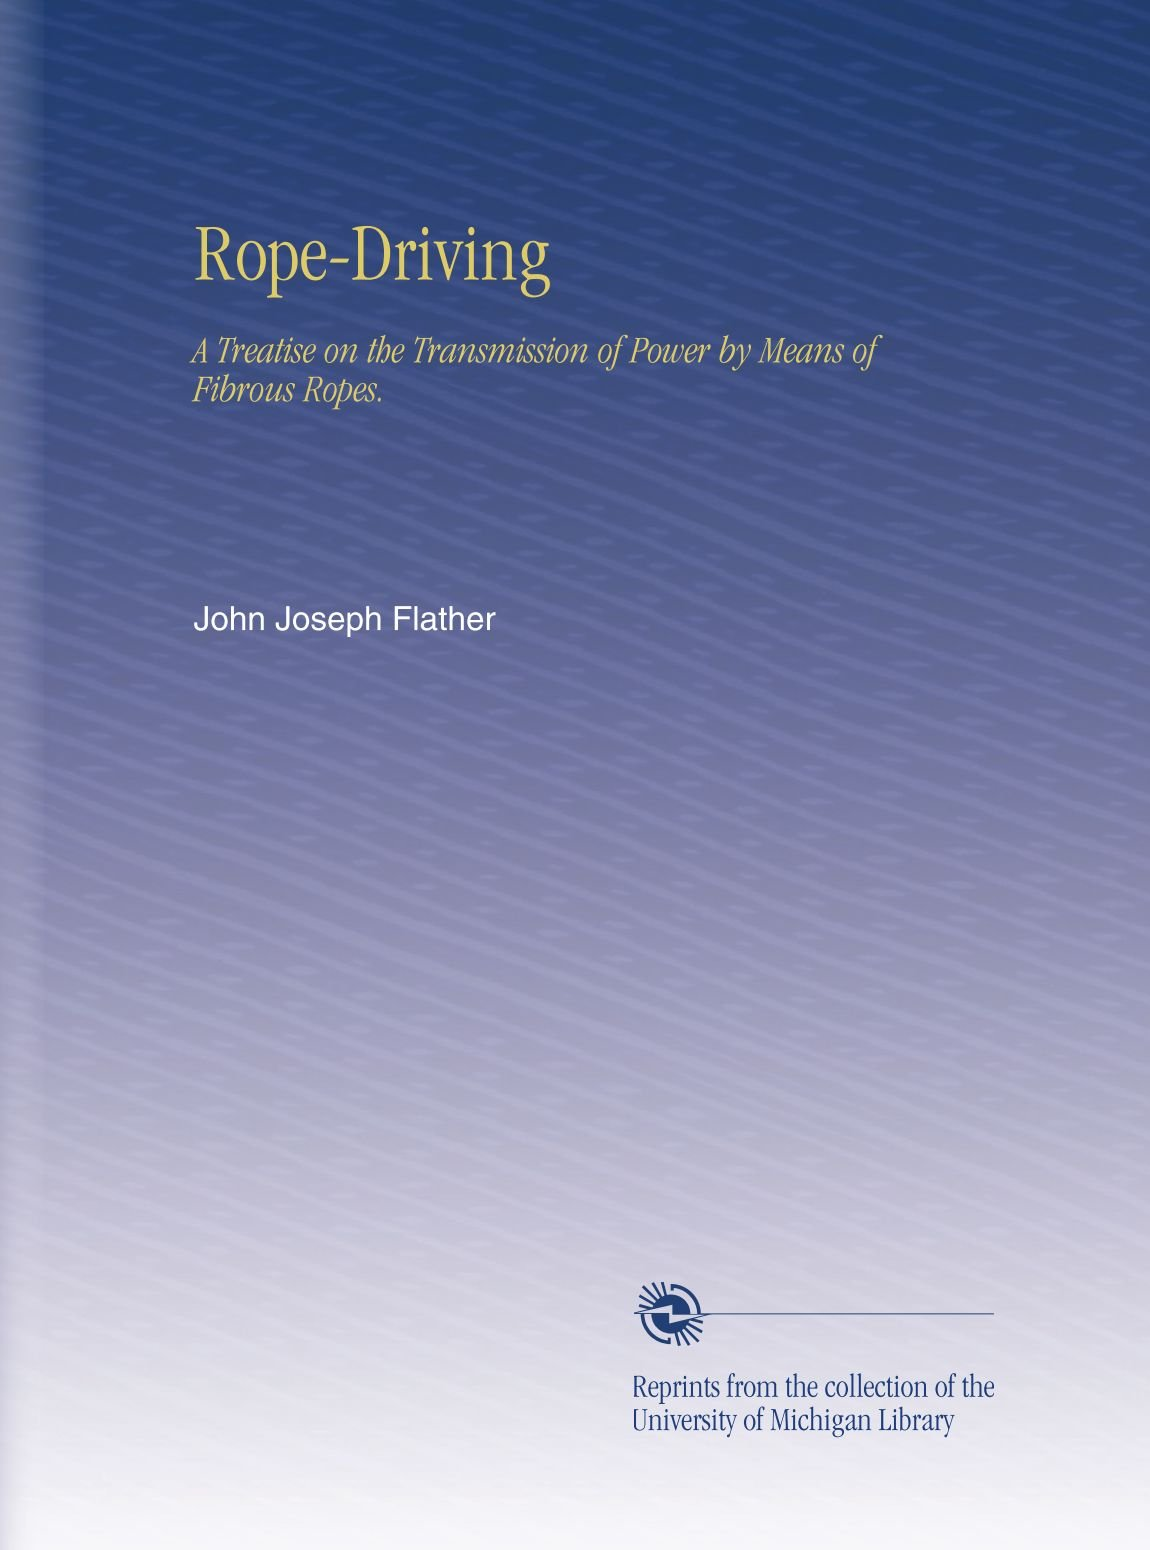 Read Online Rope-Driving: A Treatise on the Transmission of Power by Means of Fibrous Ropes. PDF